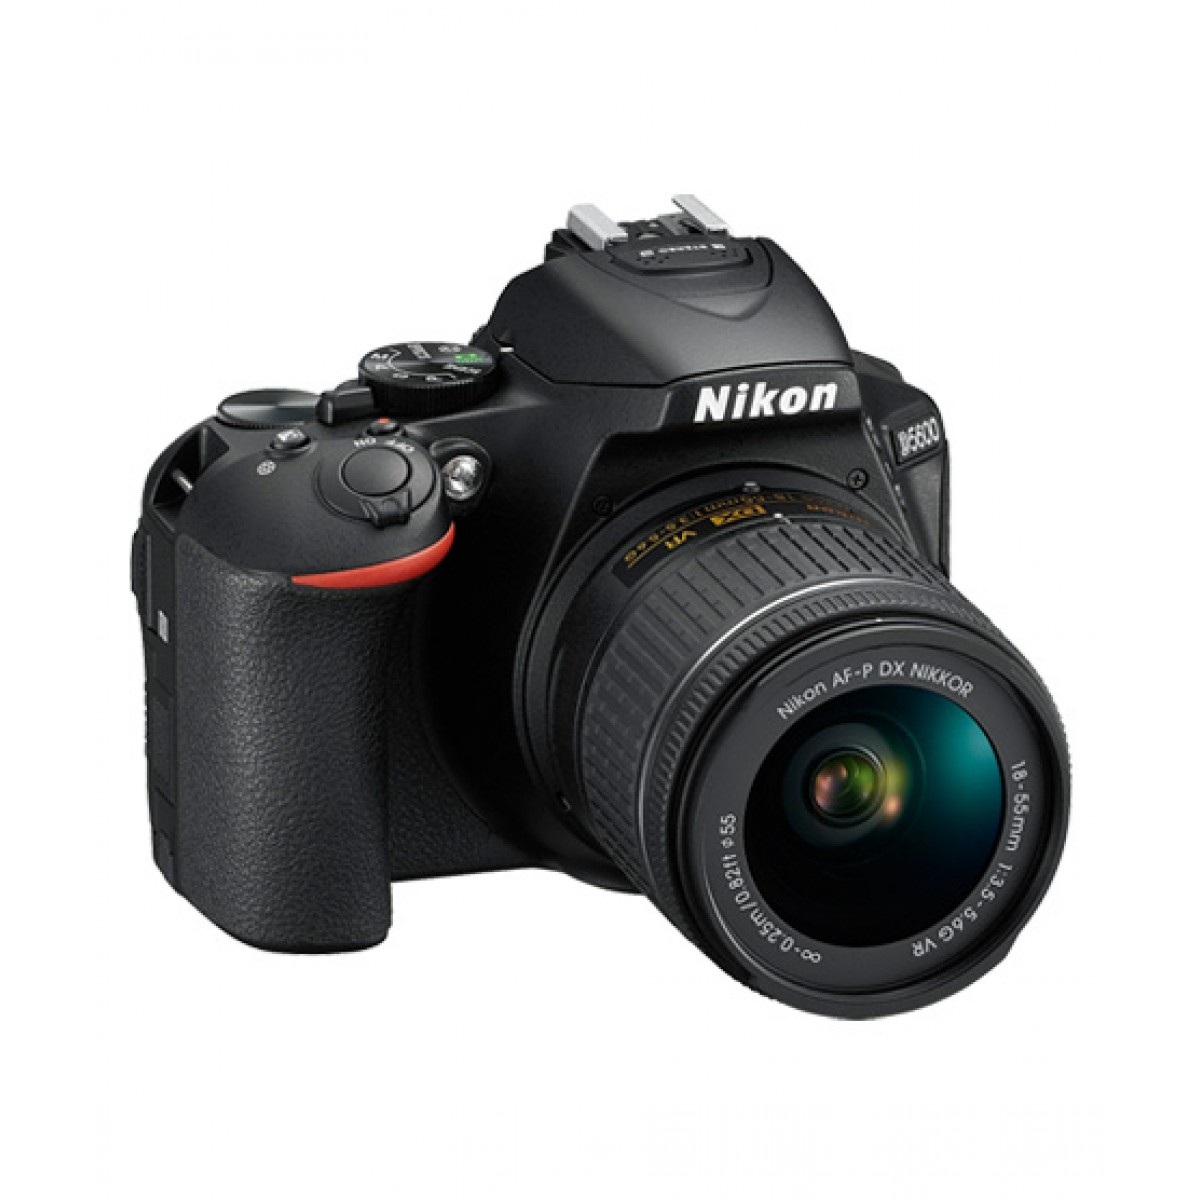 Nikon D5600 DSLR Camera with 18-55mm VR Lens - International Warranty